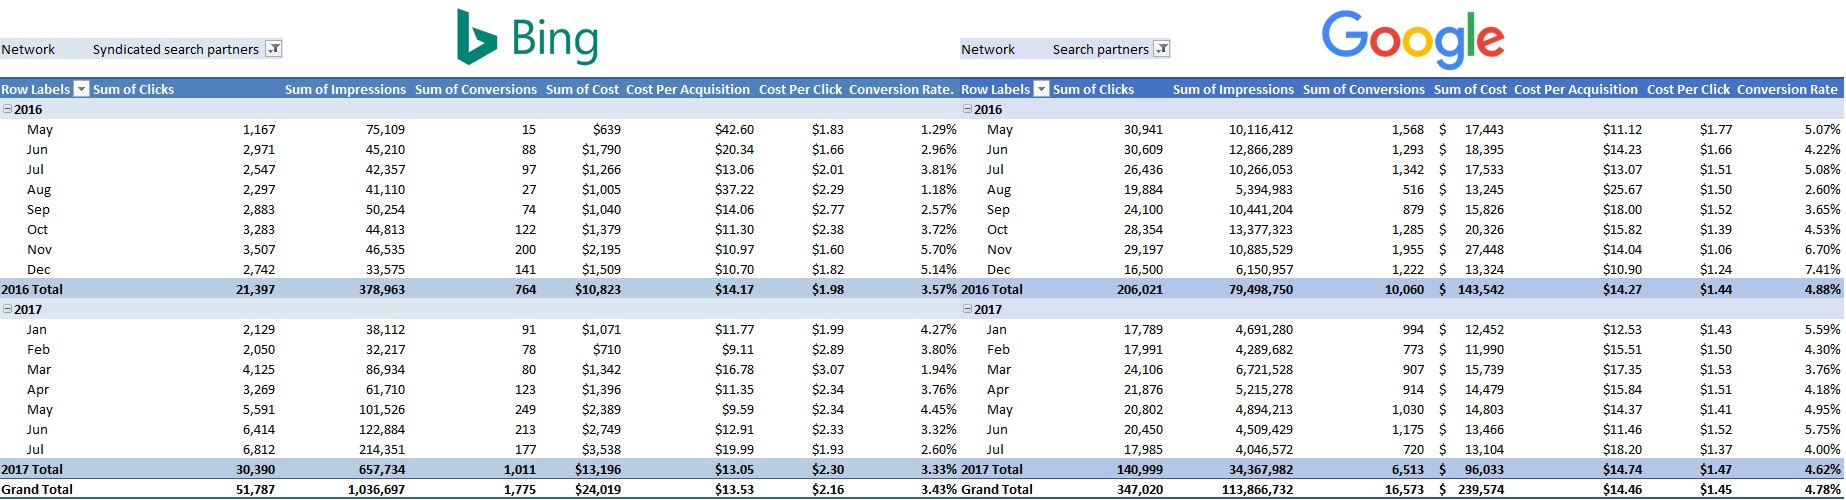 Bing Ads vs Google AdWords Search Partners